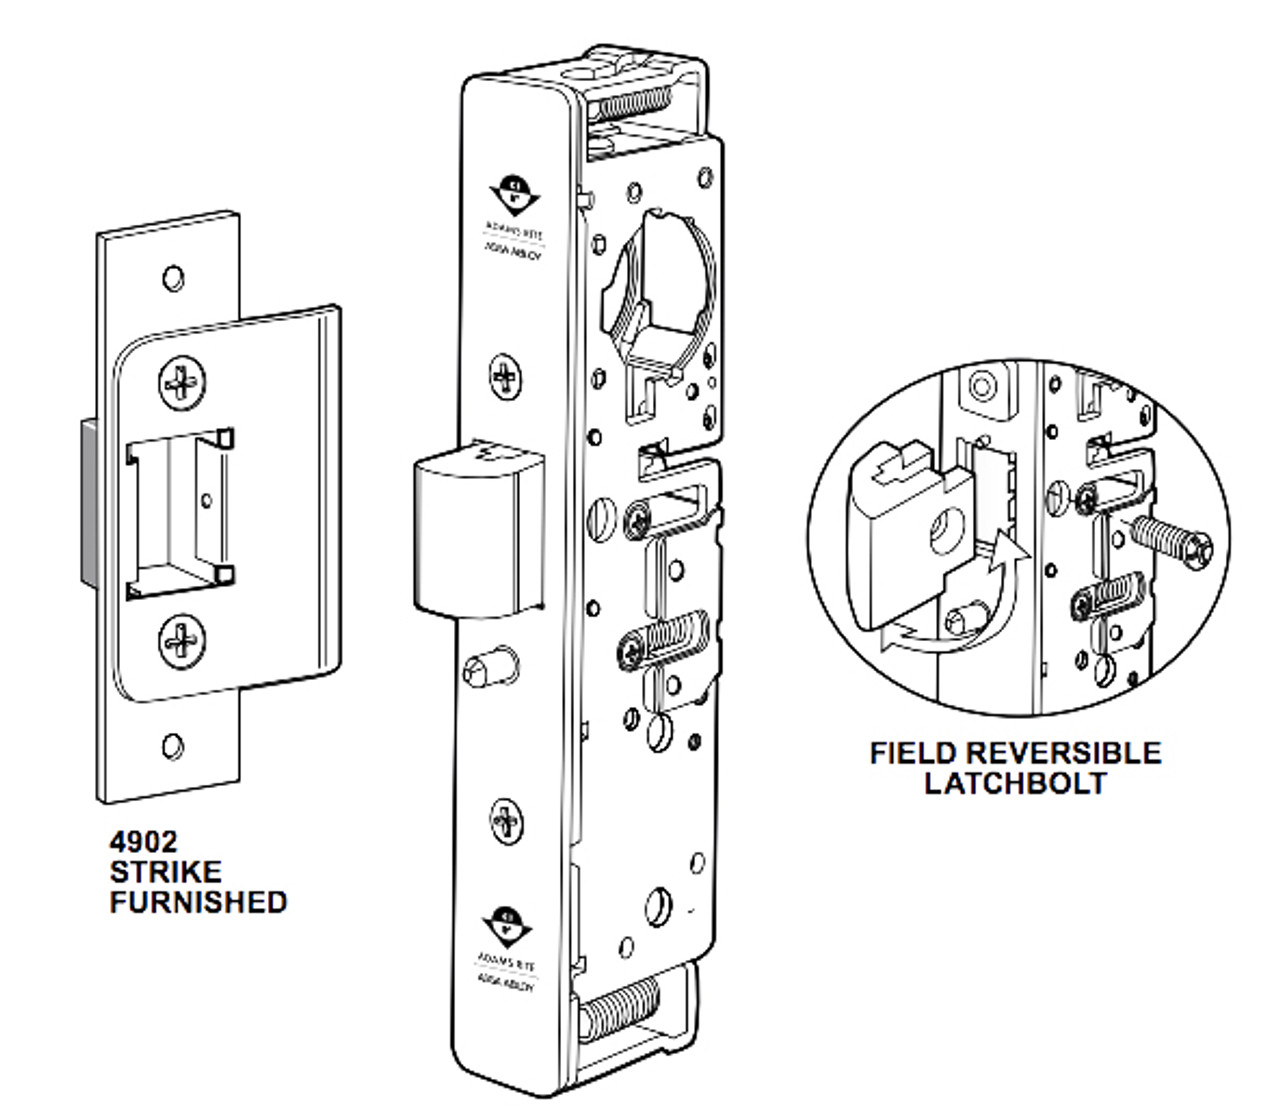 371980476940 in addition Allison 1000 Transmission Valve Body Parts Diagram Caroldoey likewise Blackhawksecurityrivertonwyomingsecurityprovider together with Ioprox Self Adhesive Round Tag additionally Tms Slidingdoorhardware Oj Ty98s12 European Modern Sliding Barn Wood Door Closet Hardware Set Satin Stainless Steel 0 3. on door access readers